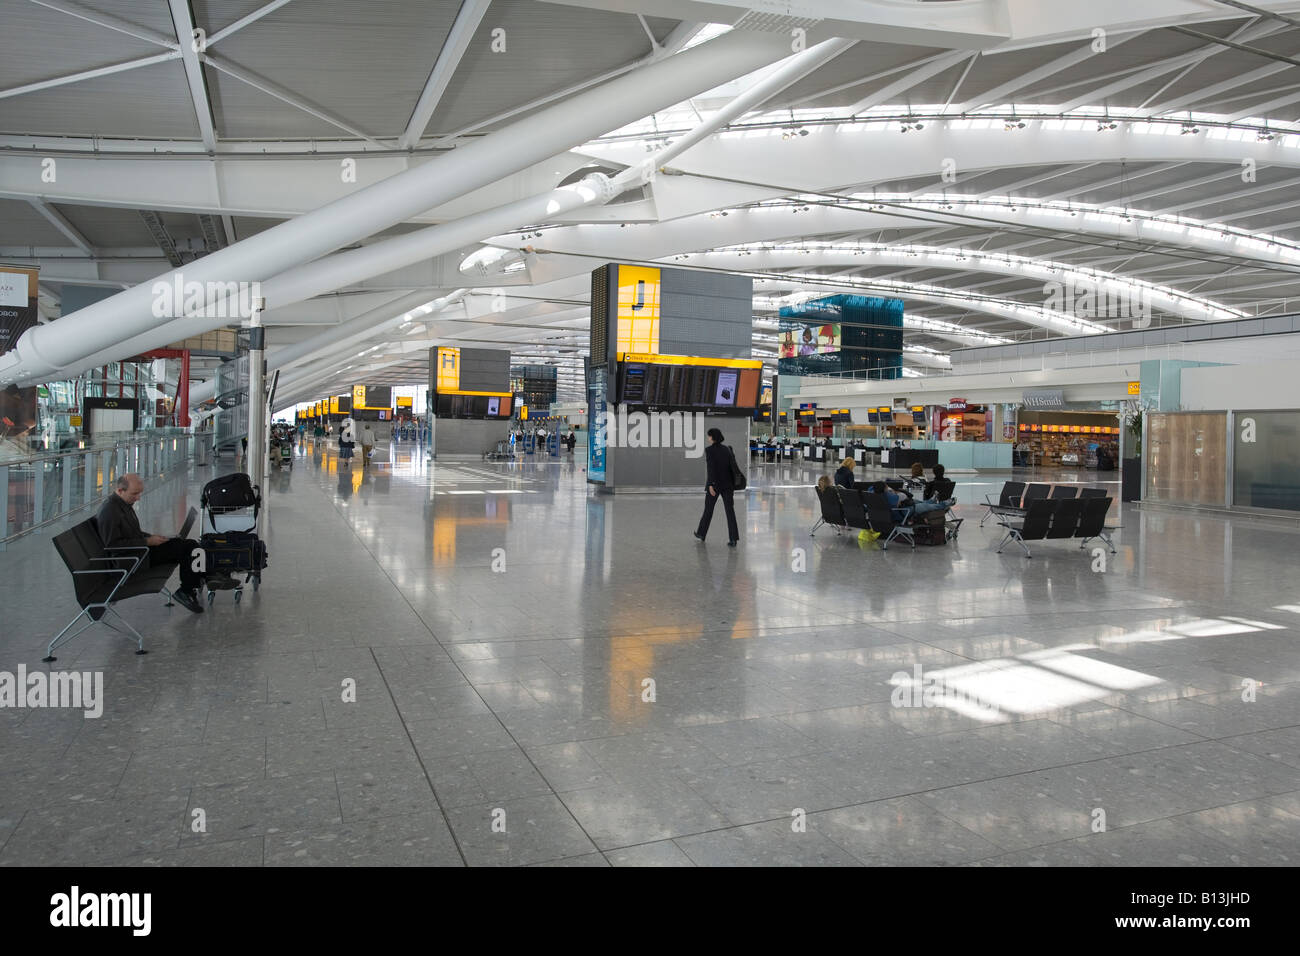 New Terminal 5 at Heathrow Airport, architect Richard Rogers - Stock Image